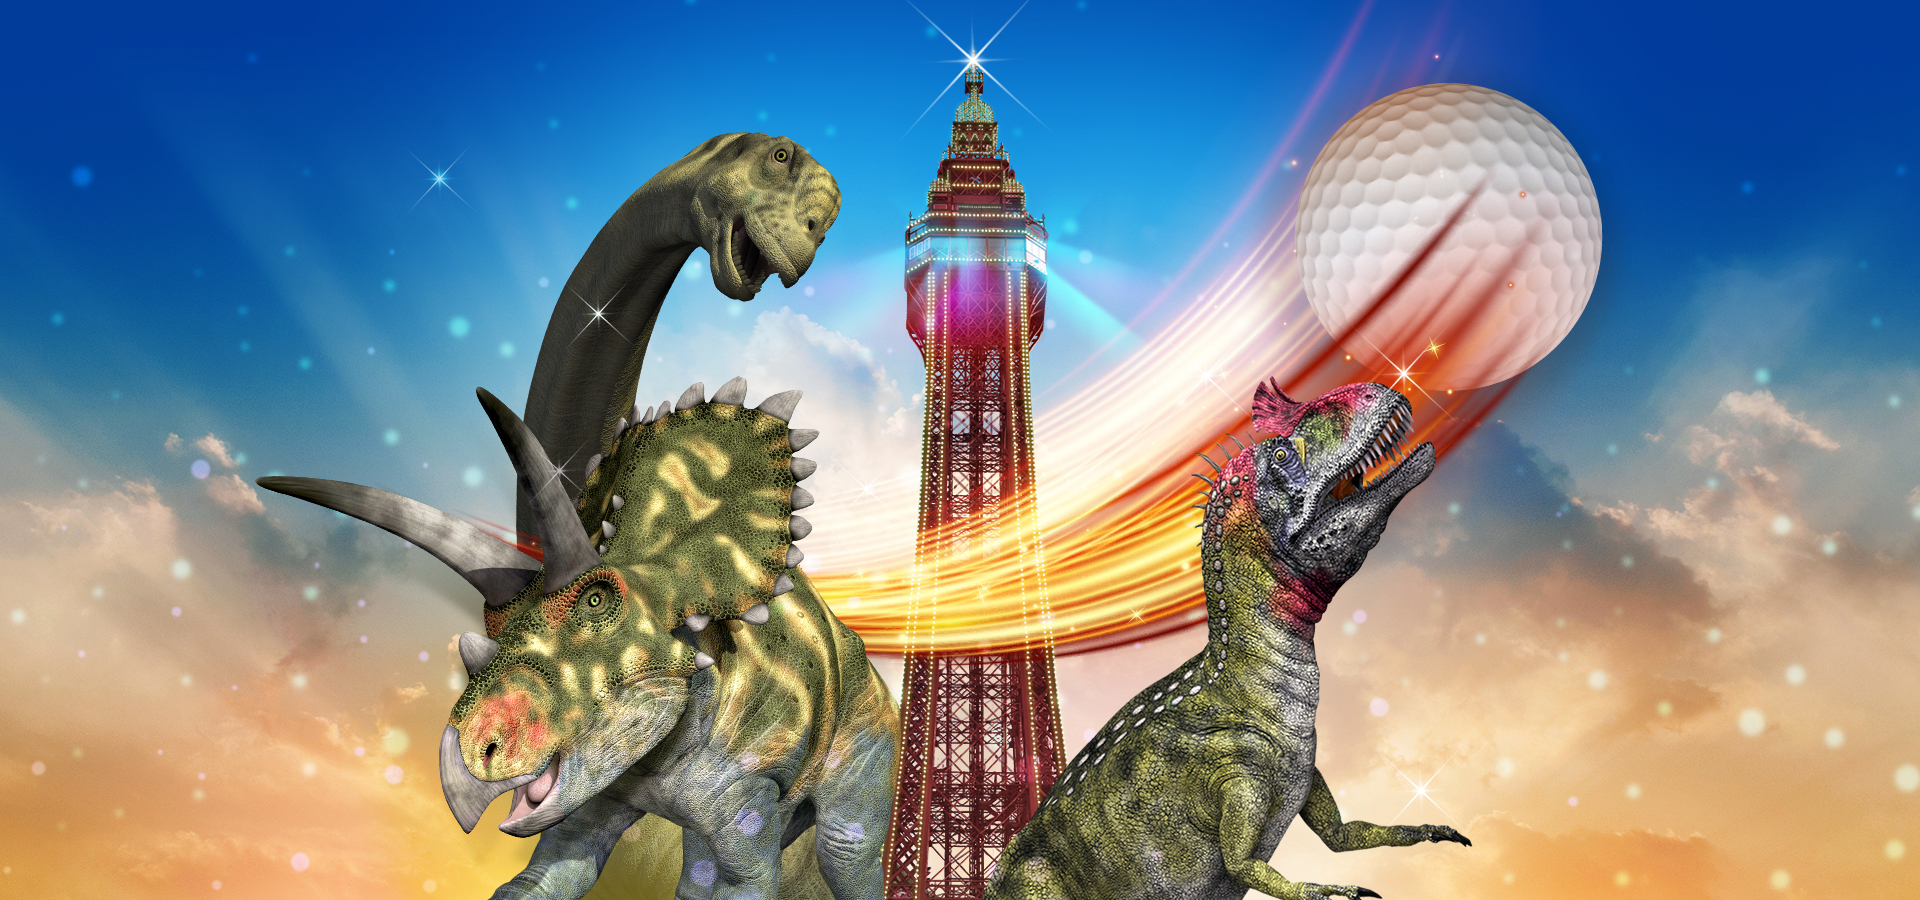 Dino Mini Golf at the Blackpool Tower